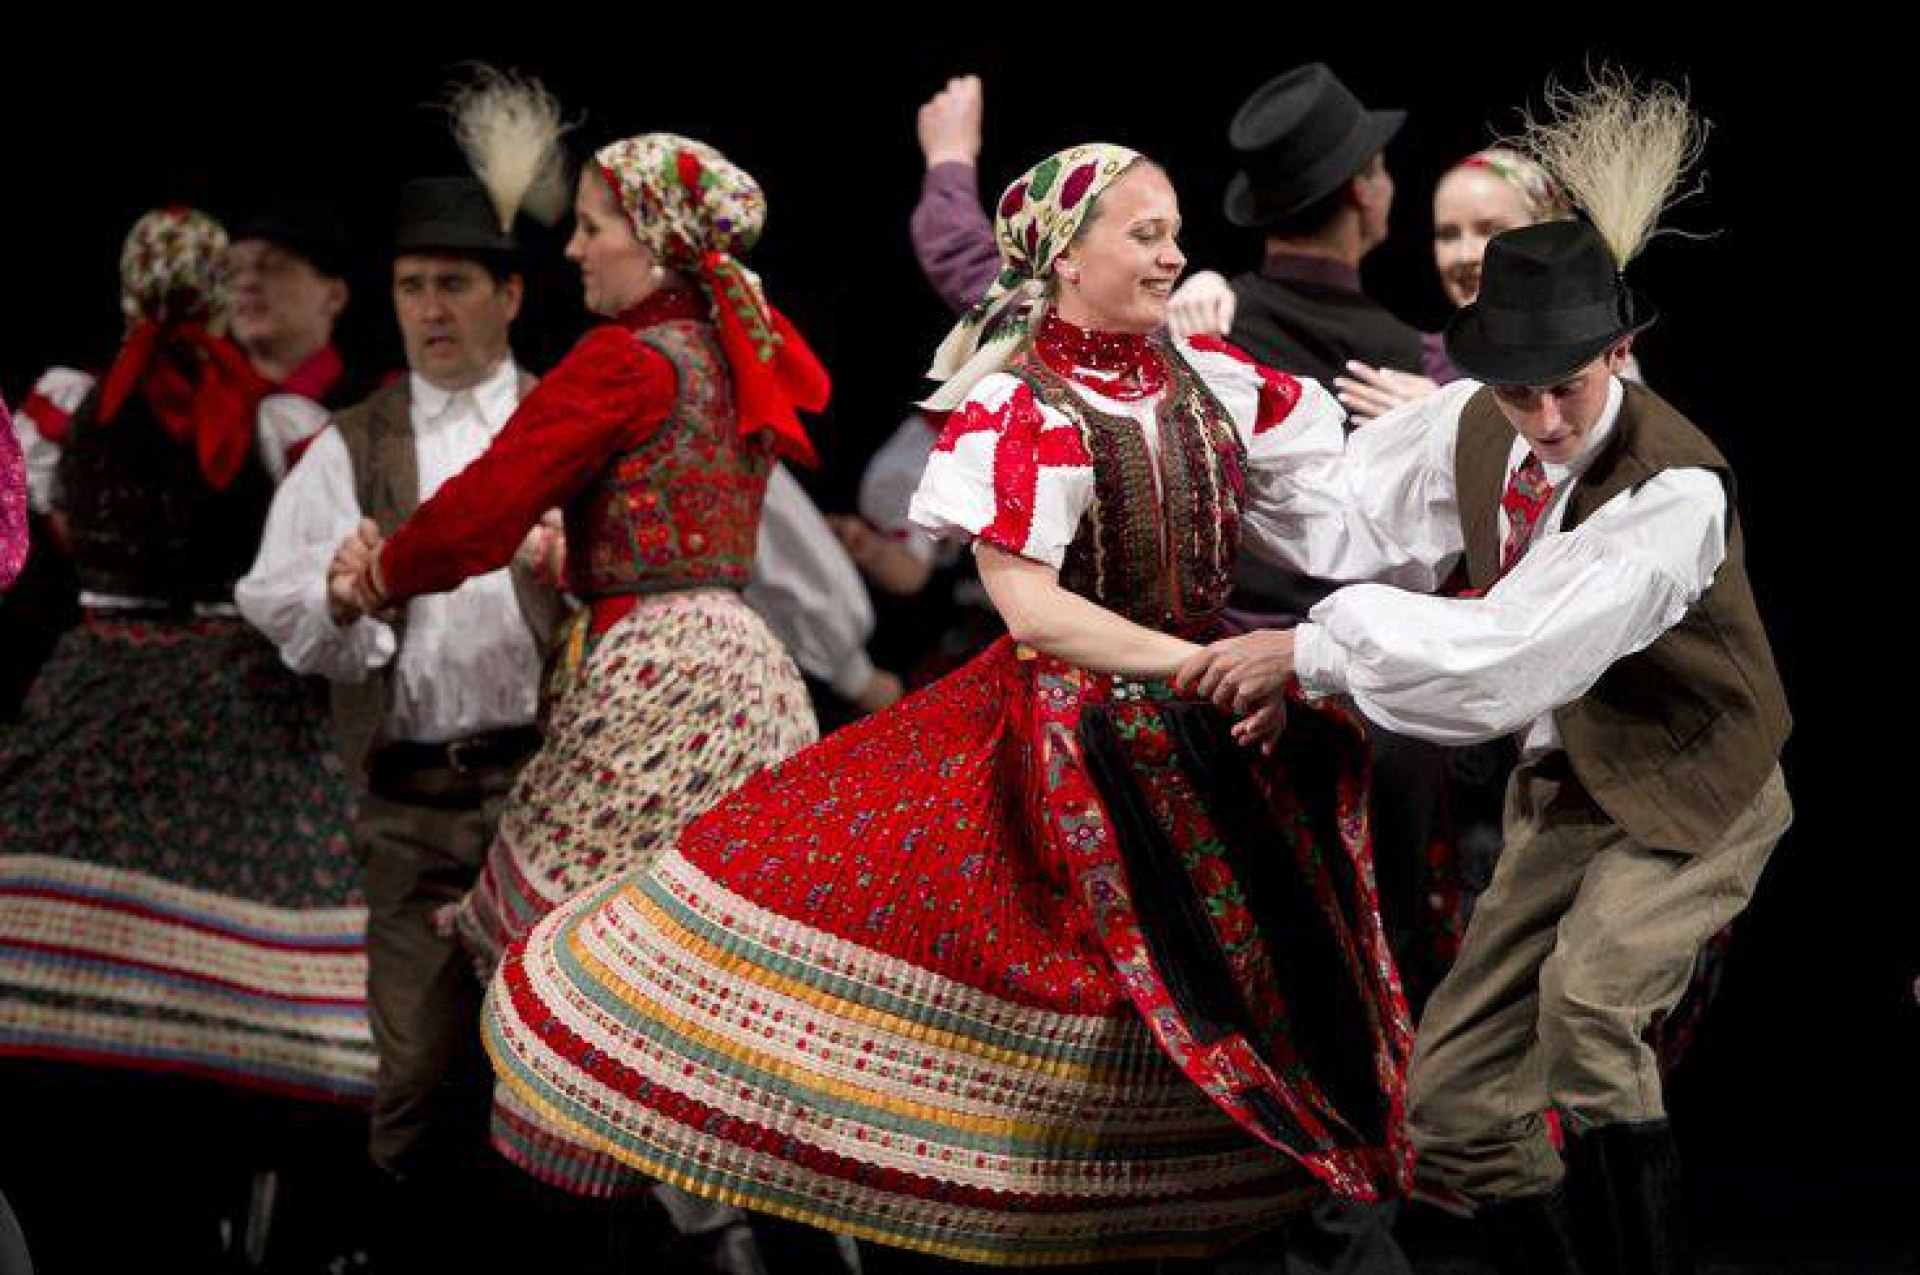 Folklore performance + Dinner & Cruise